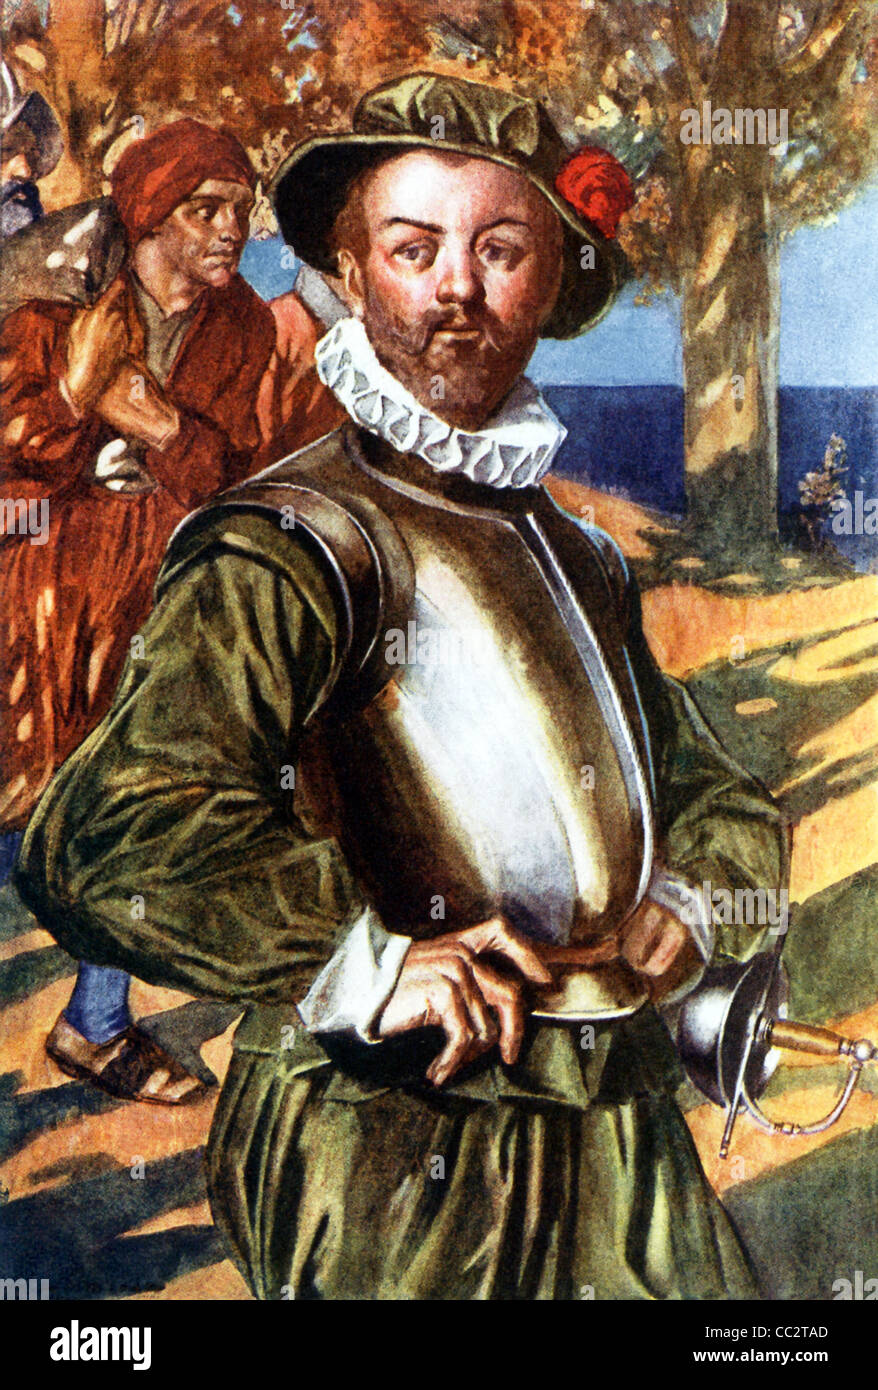 English navigator Sir Francis Drake shown while disembarking at one of the stops he made, while sailing his galleon - Stock Image